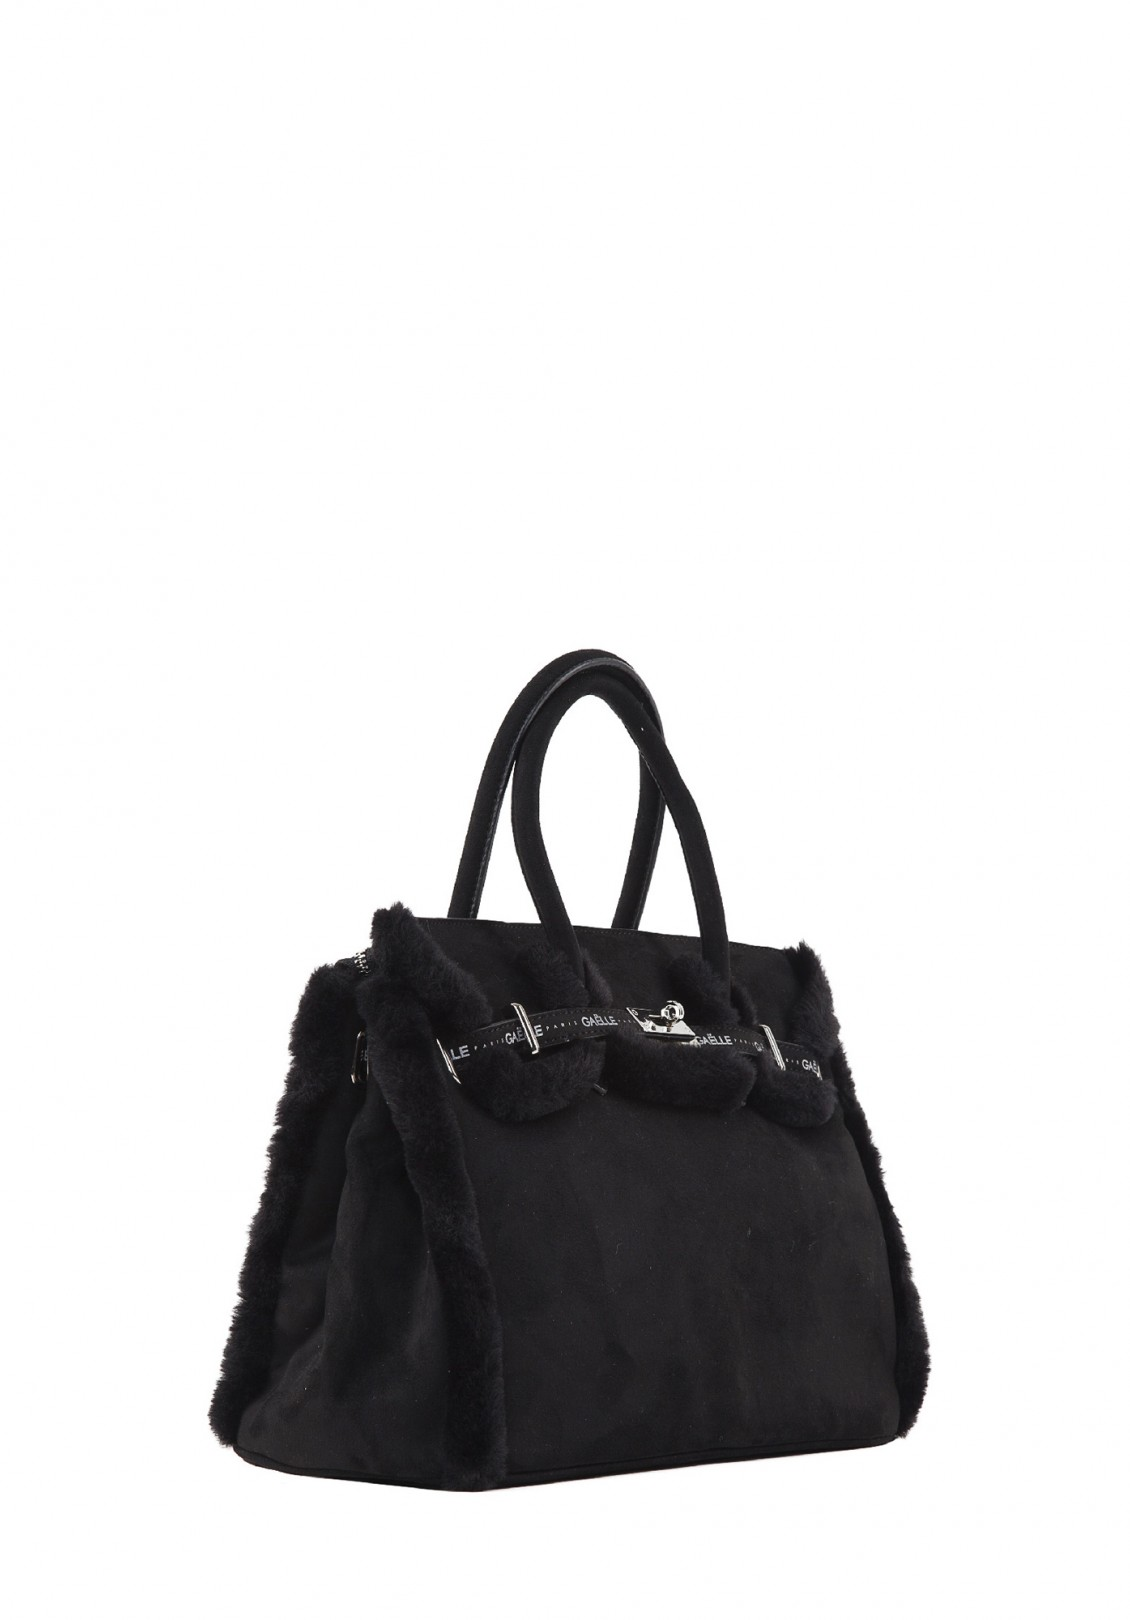 SHOPPER  - GBDA1253 - GAELLE PARIS